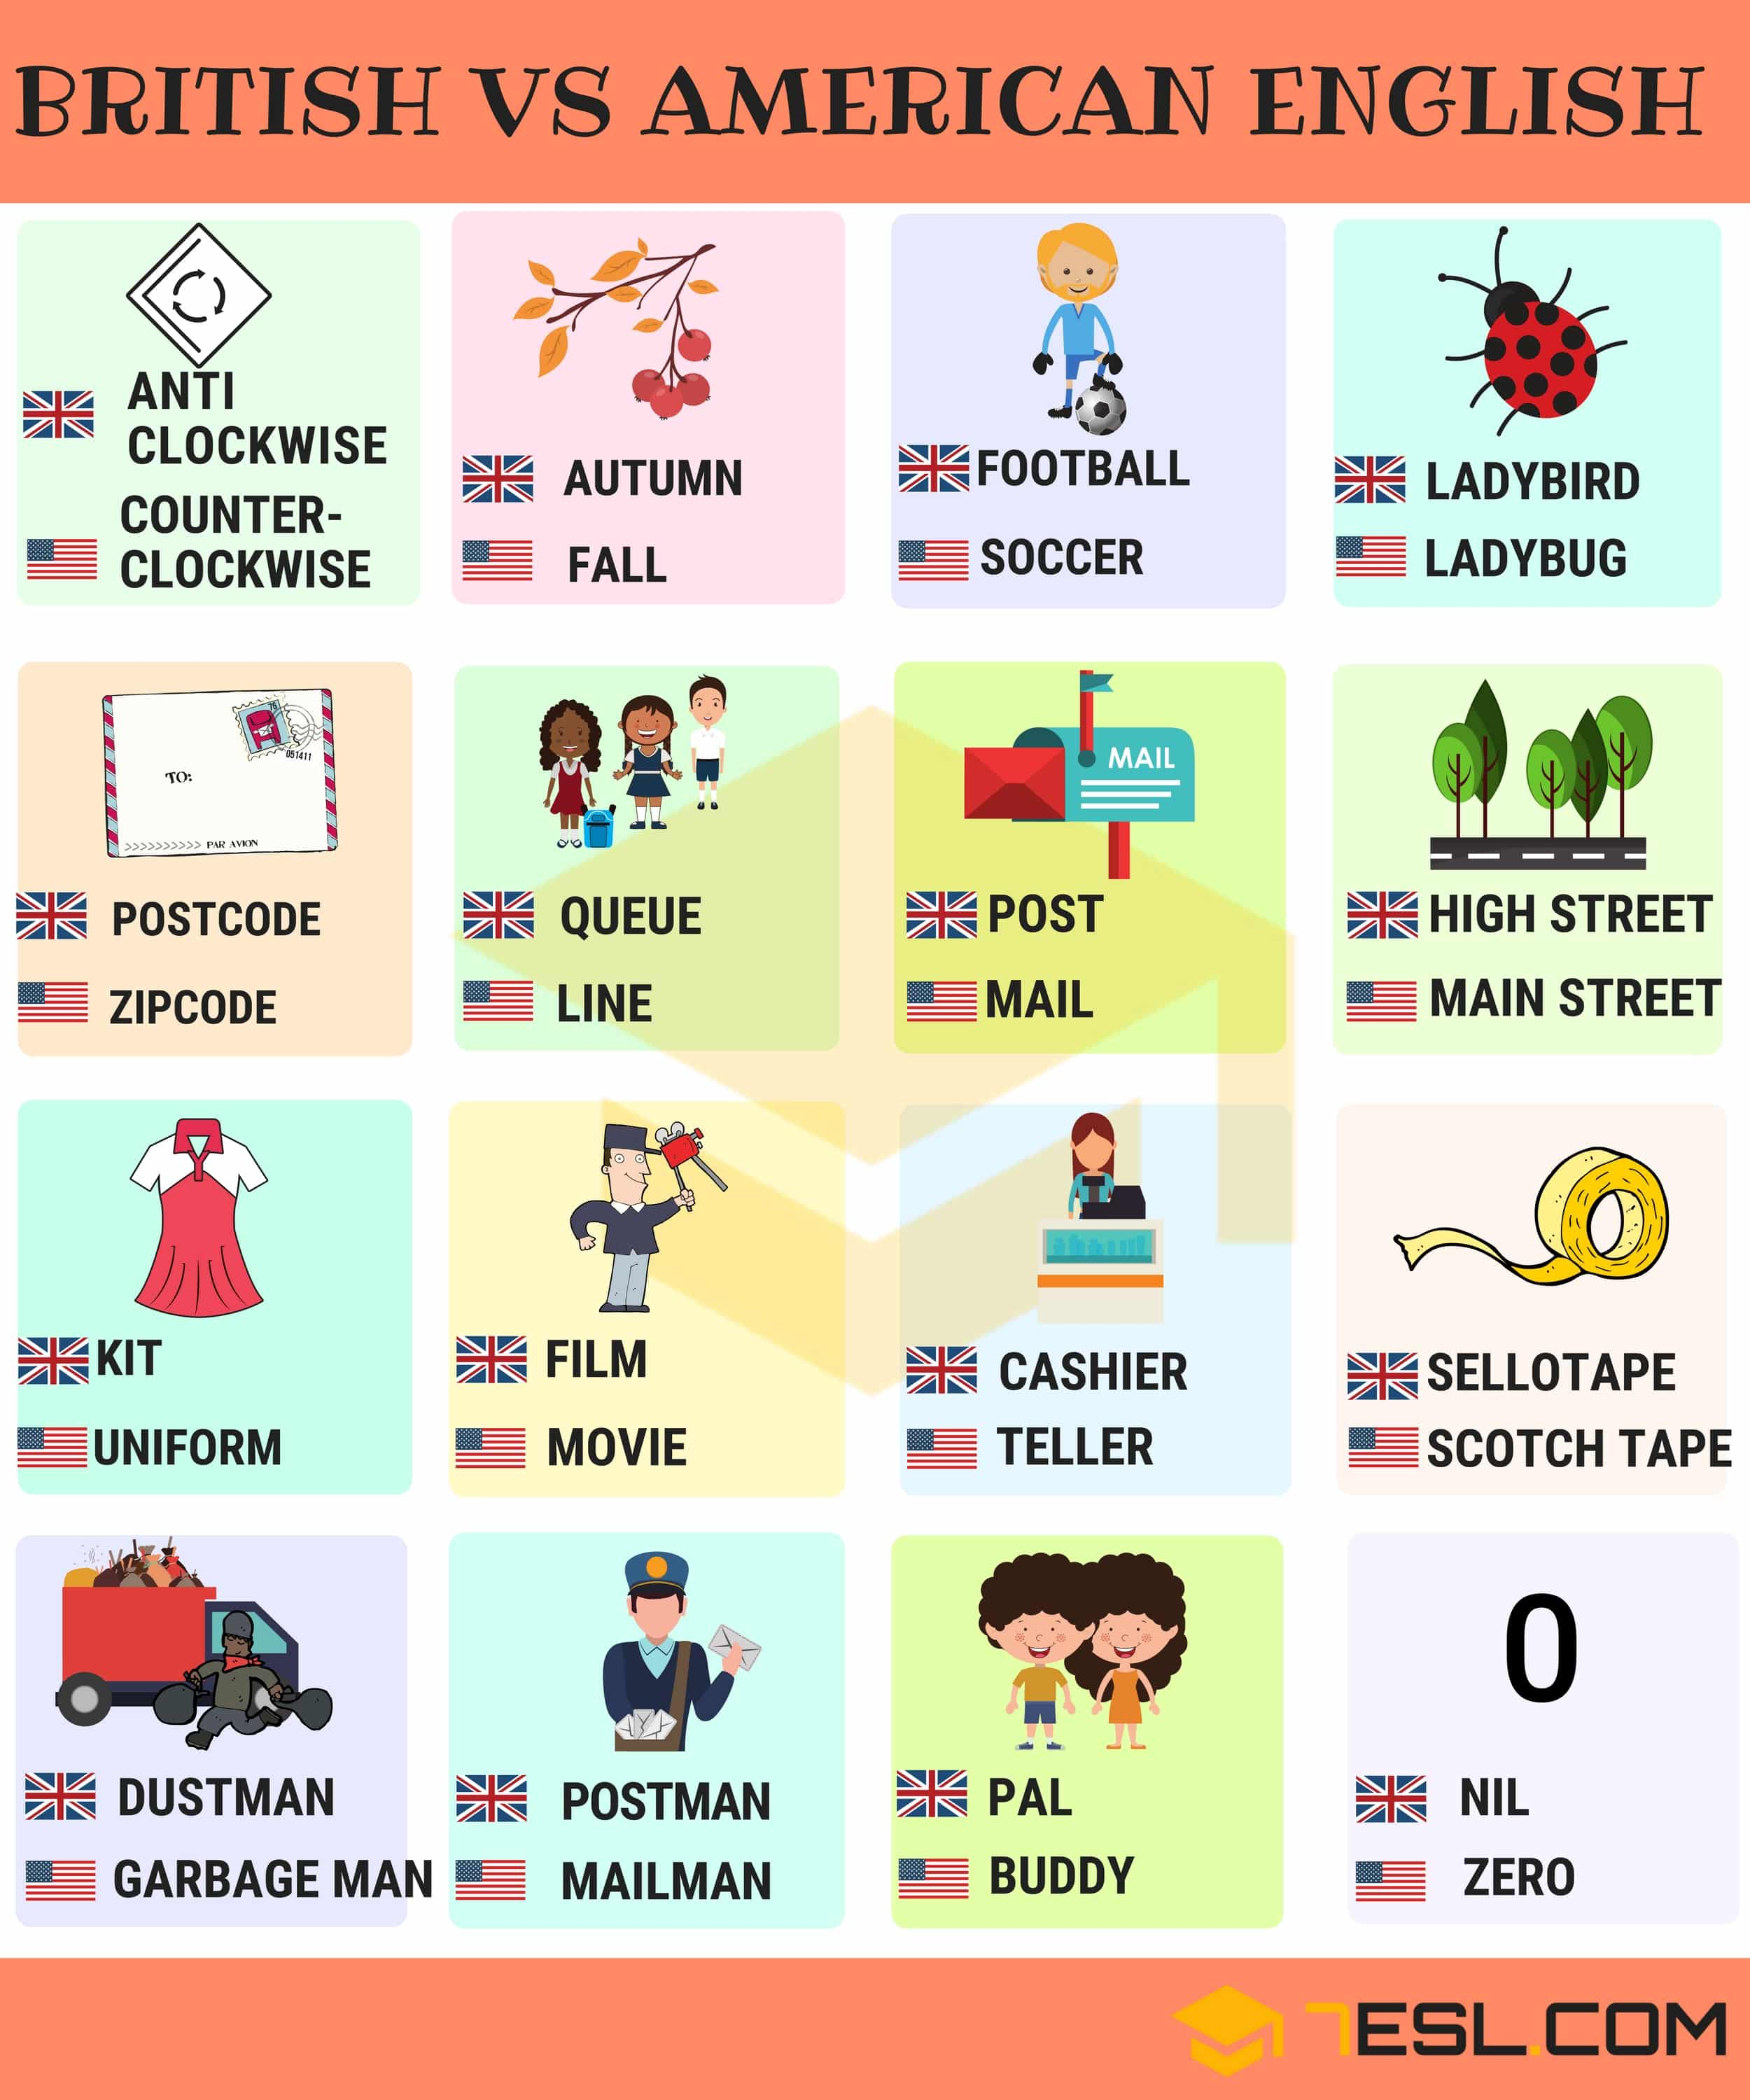 British and American English: 150+ Differences Illustrated